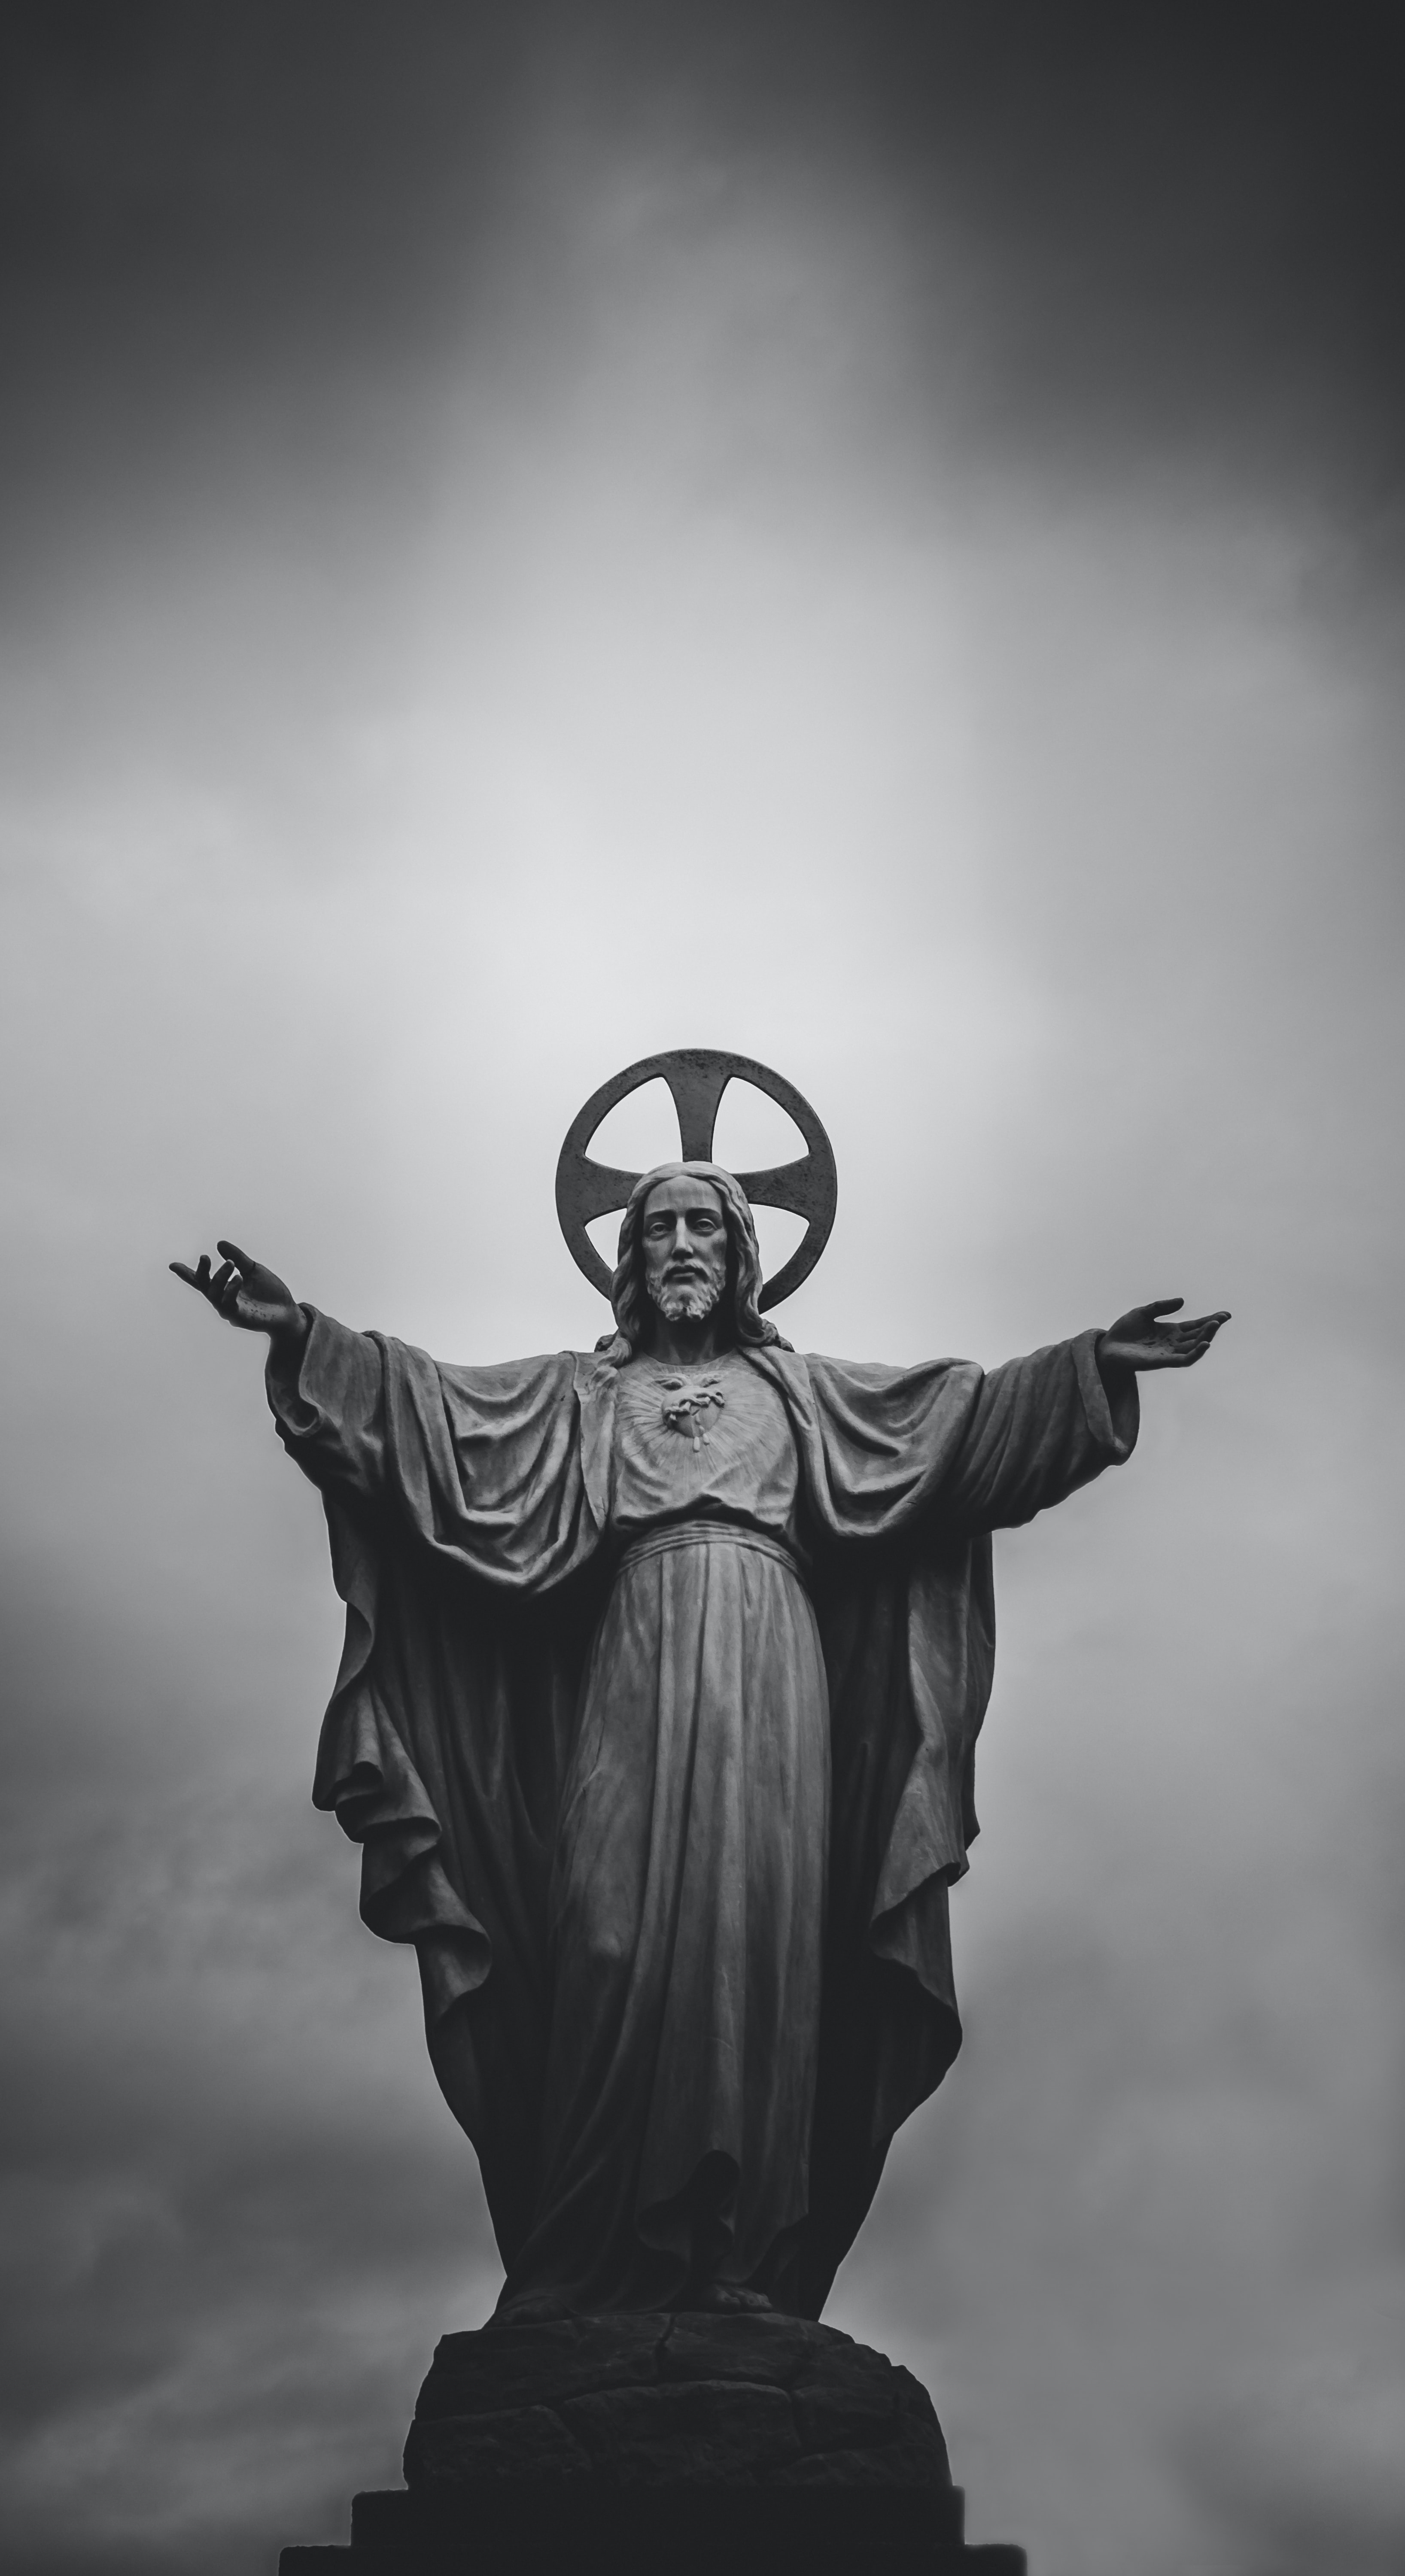 grayscale photograph of Jesus Christ statue